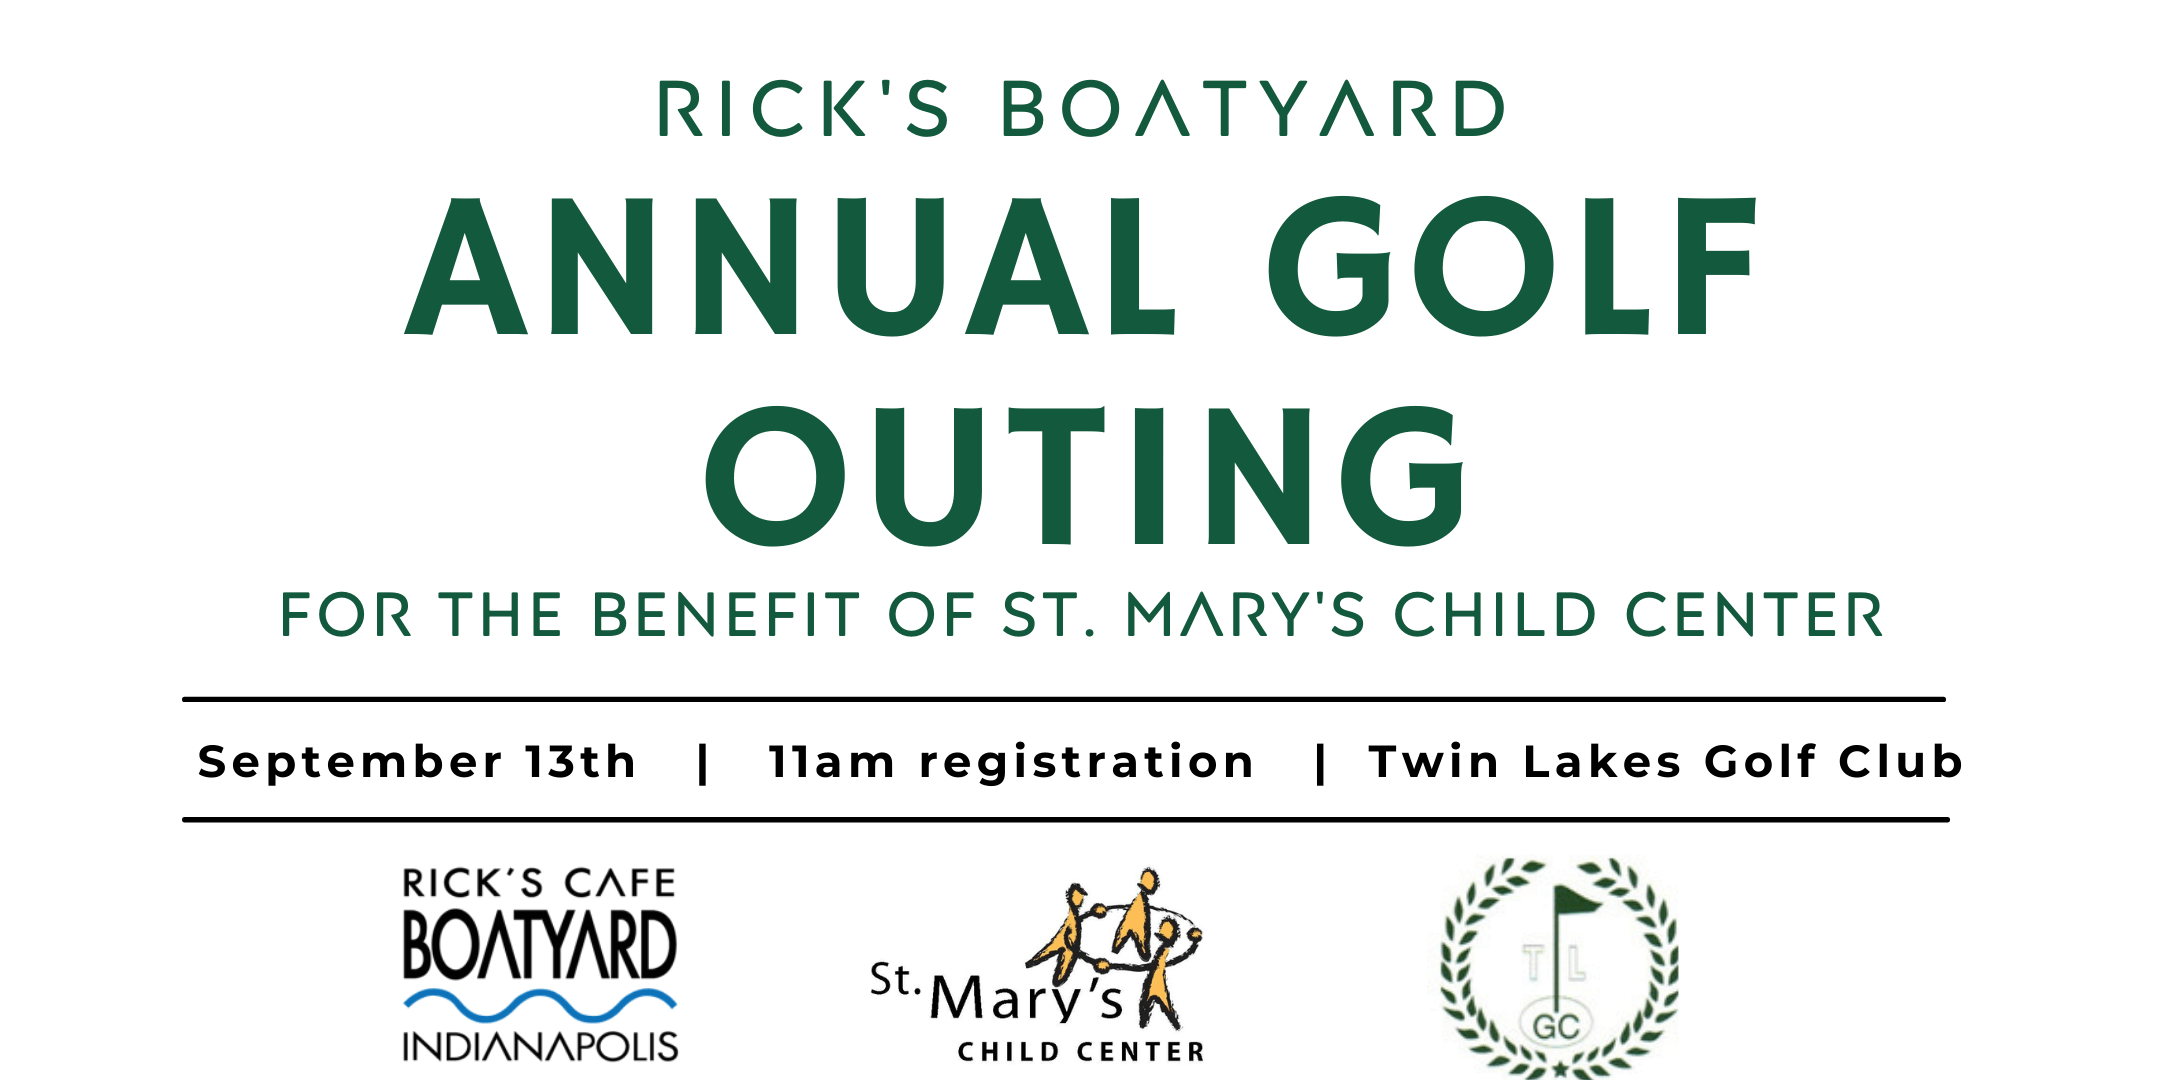 Rick's Boatyard Annual Golf Outing